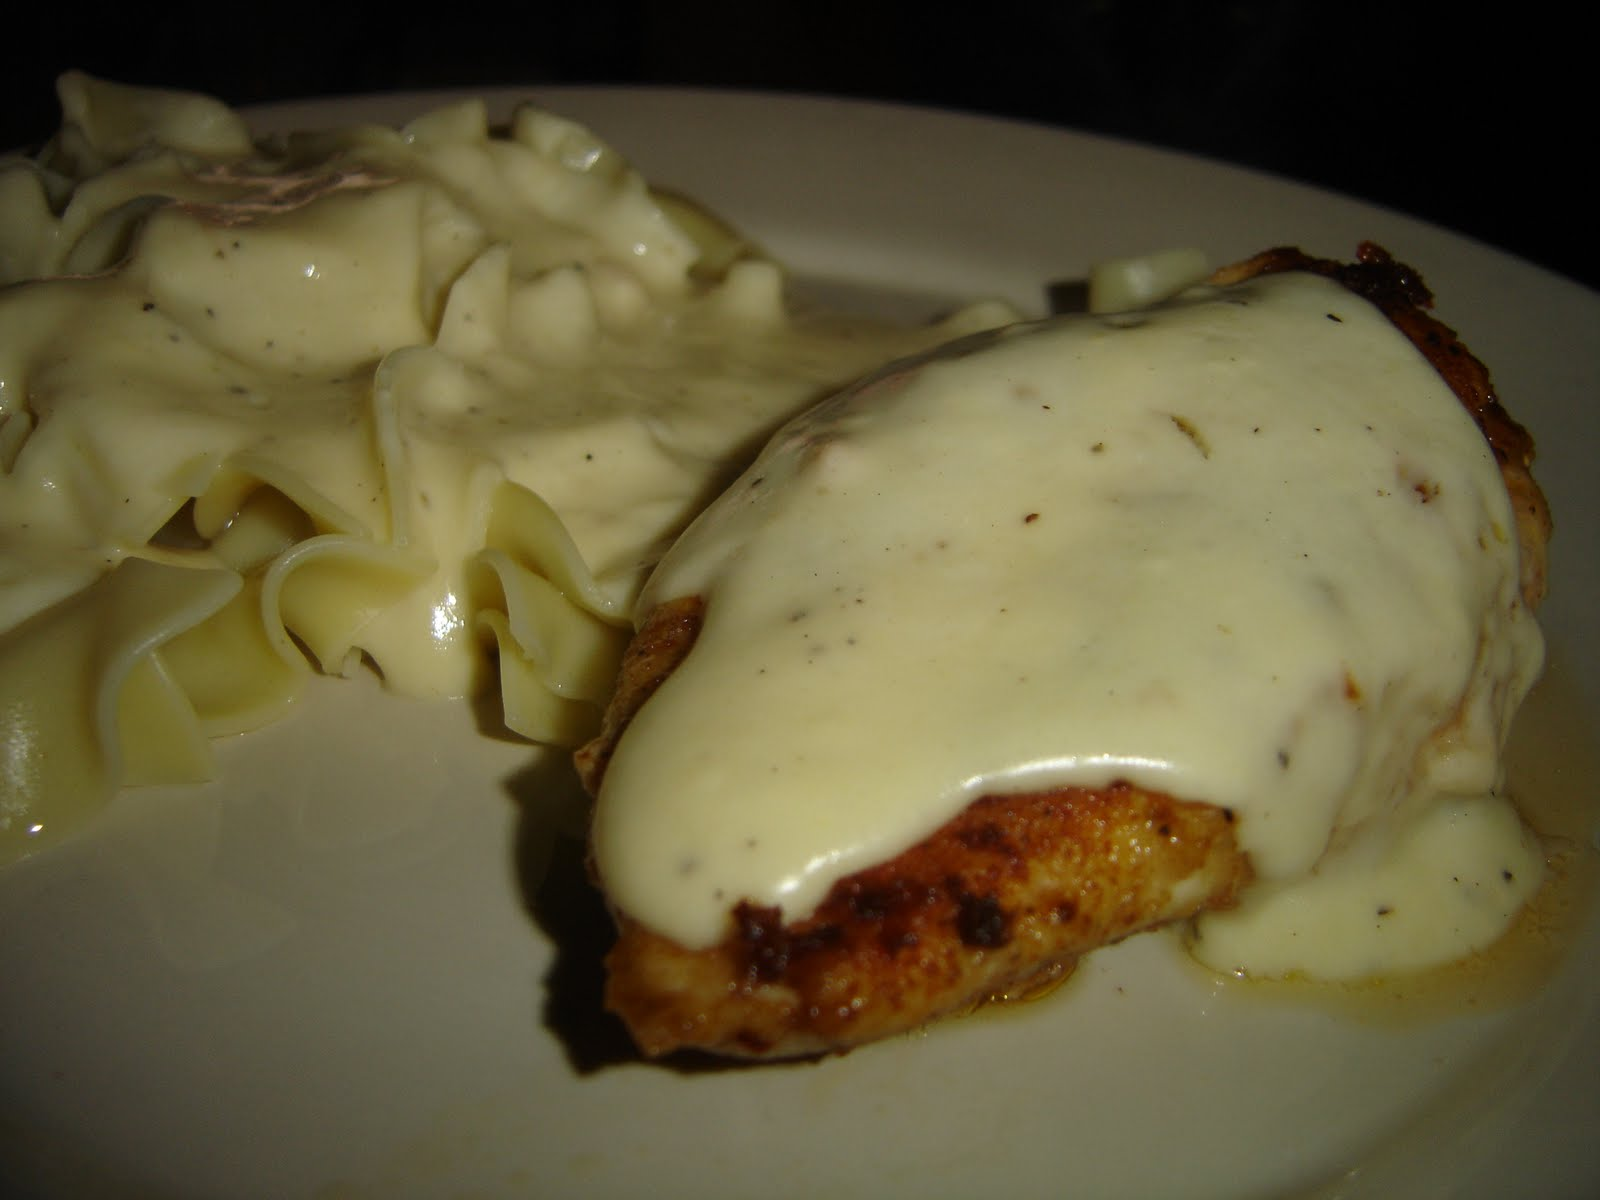 Baked Chicken With Sour Cream Recipe